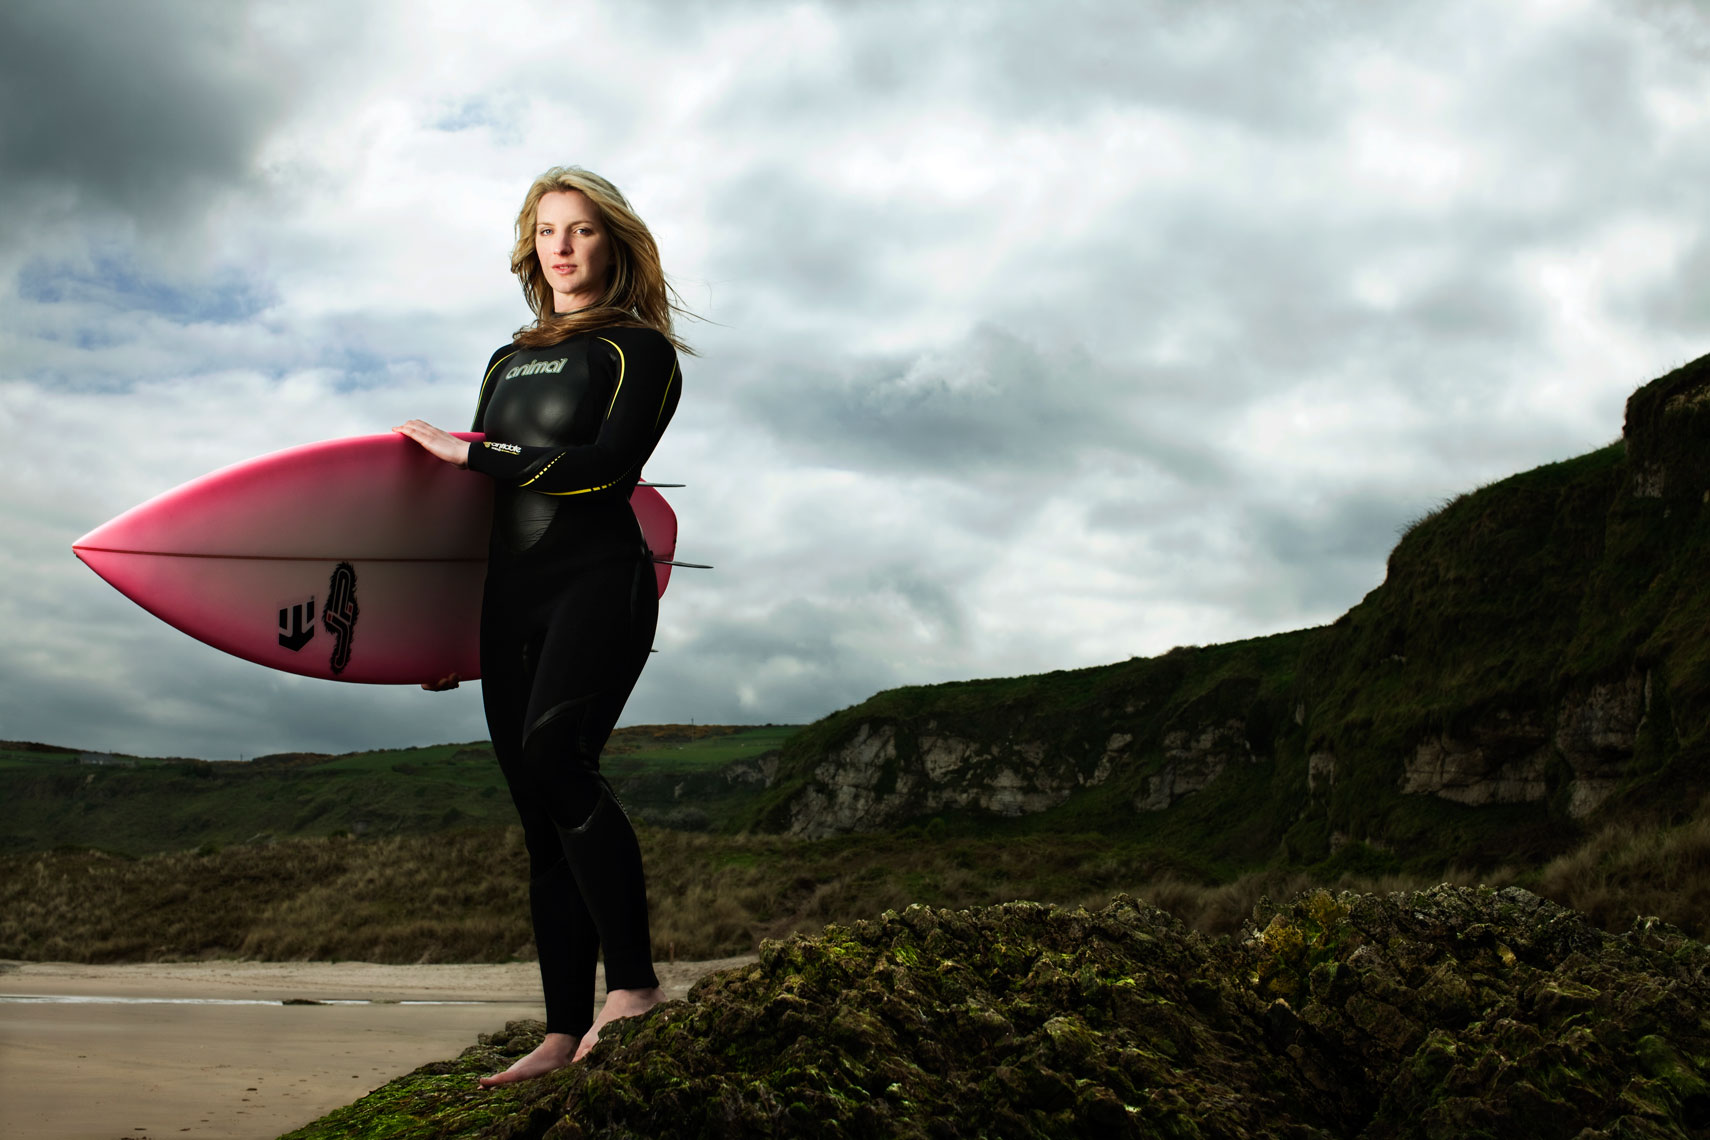 female surfer wearing black wetsuit stands on rock with pink surfboard